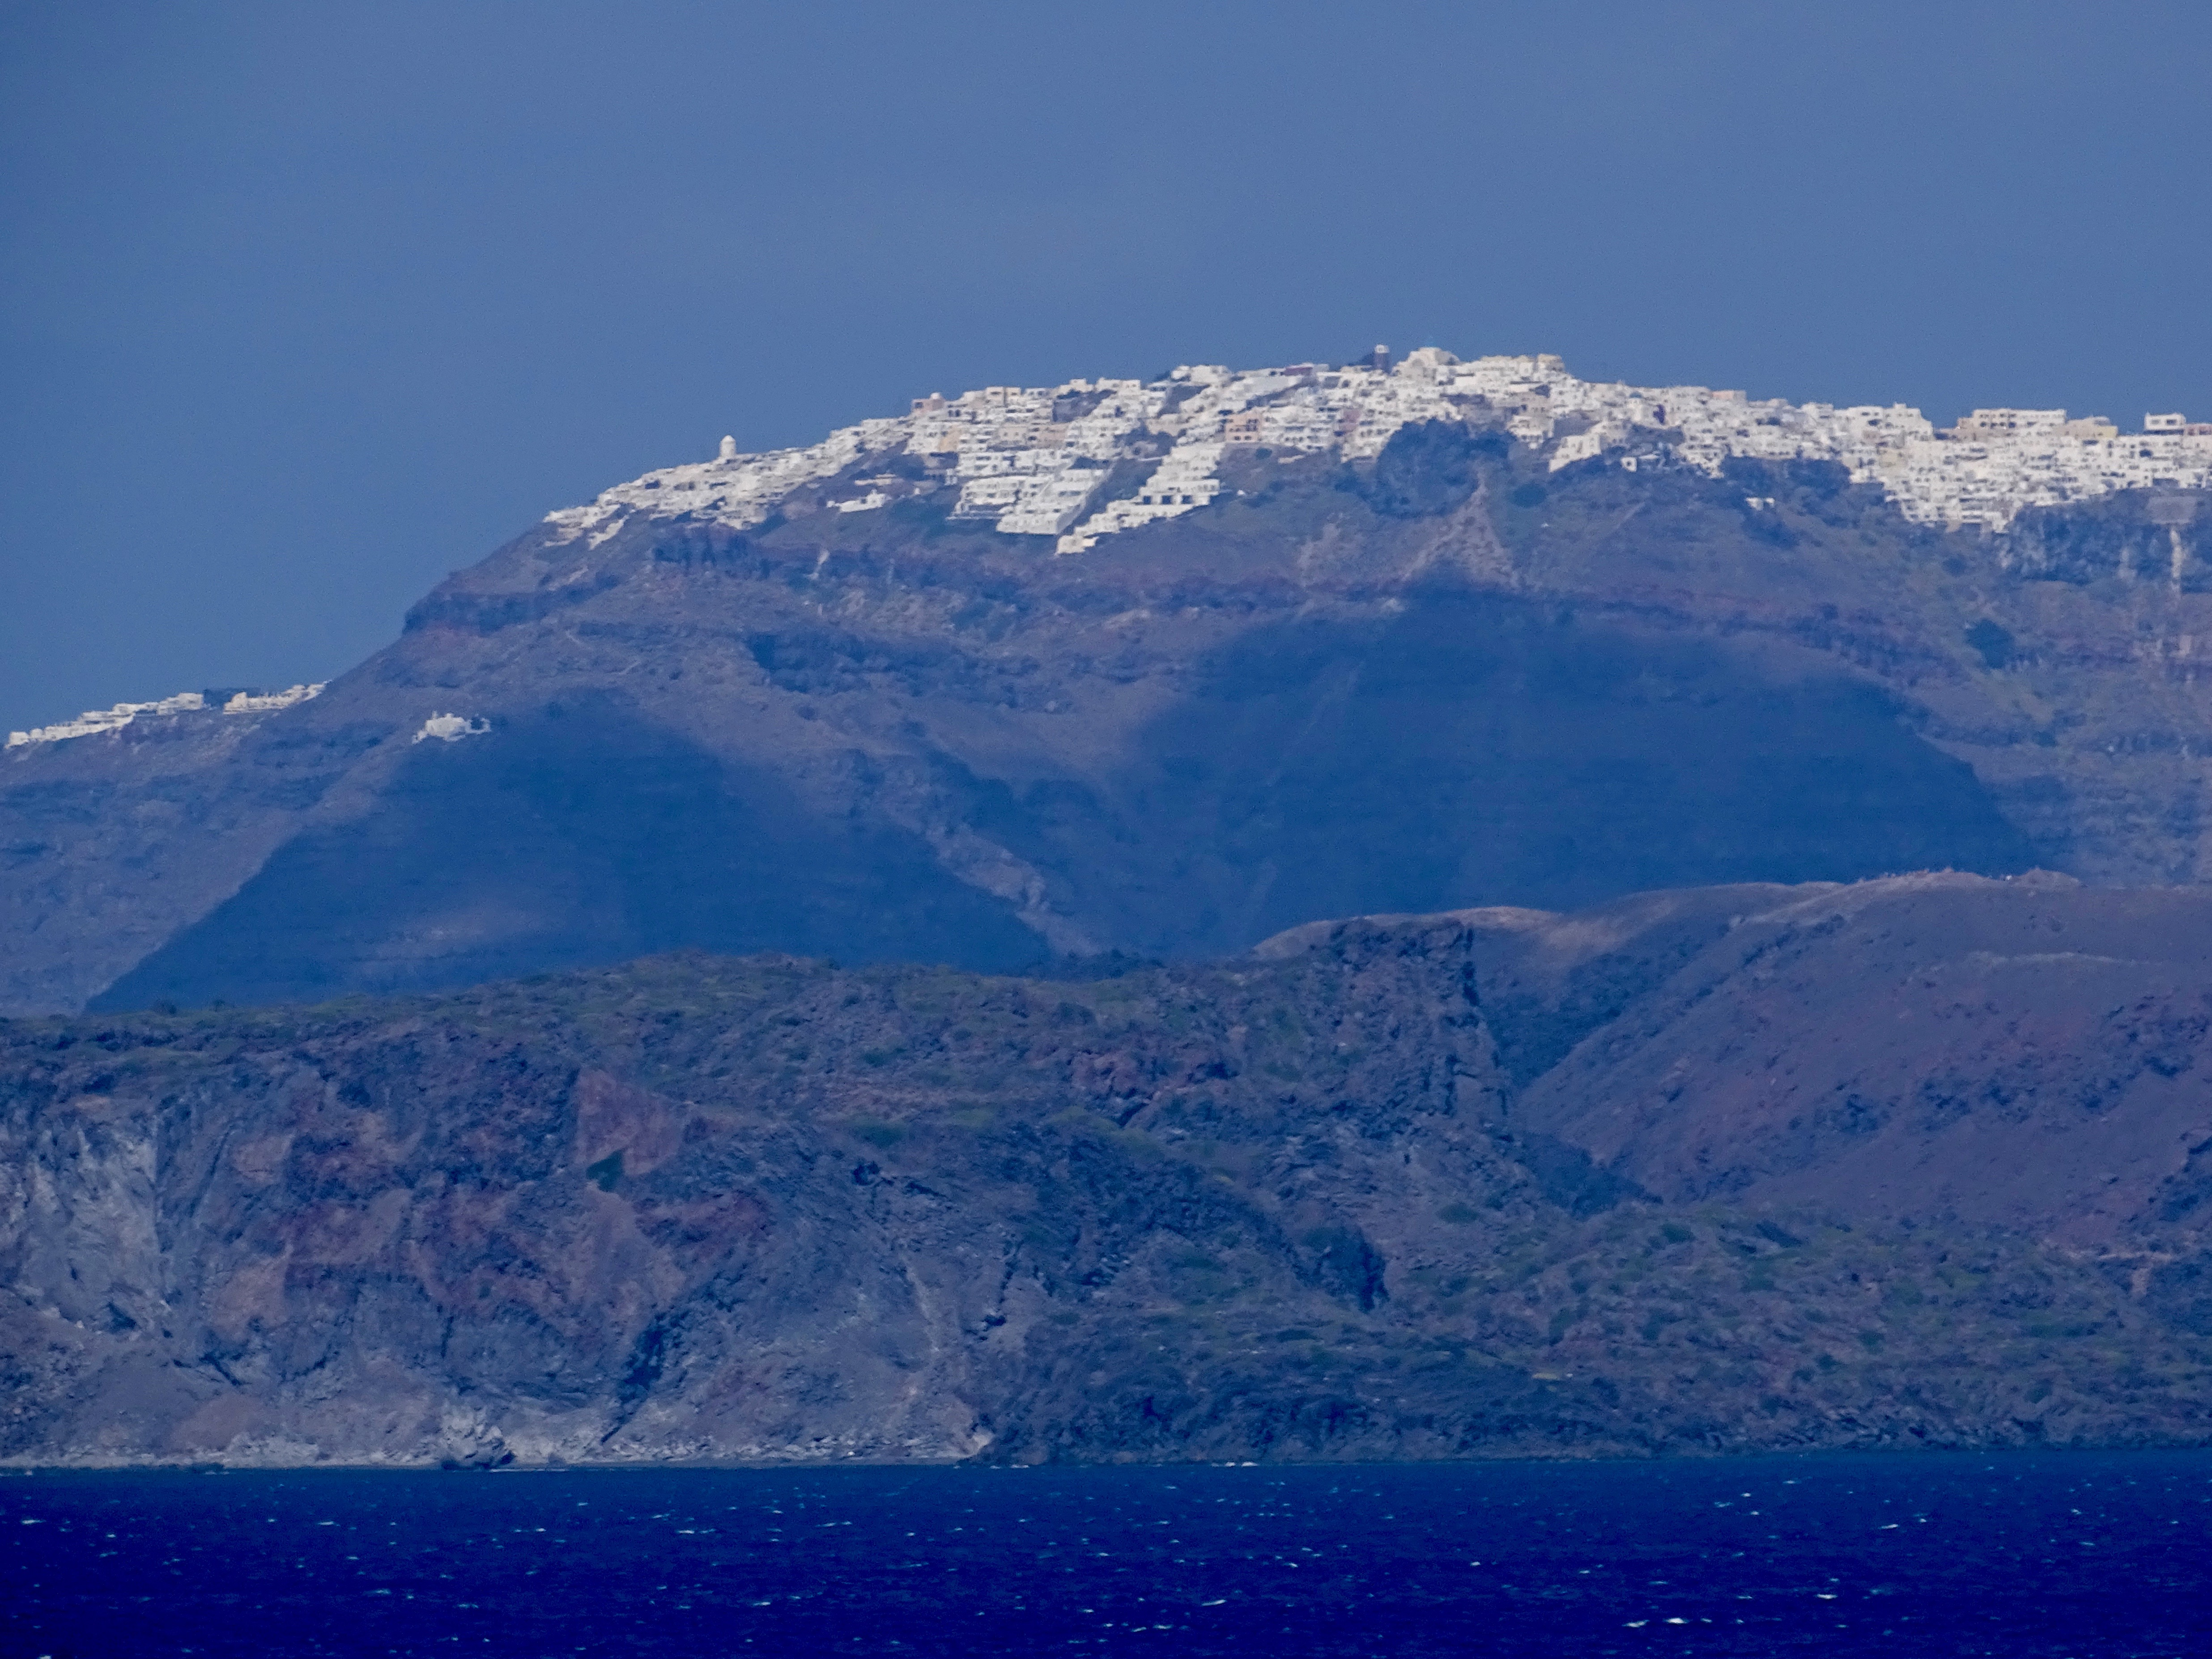 Santorini island from the water